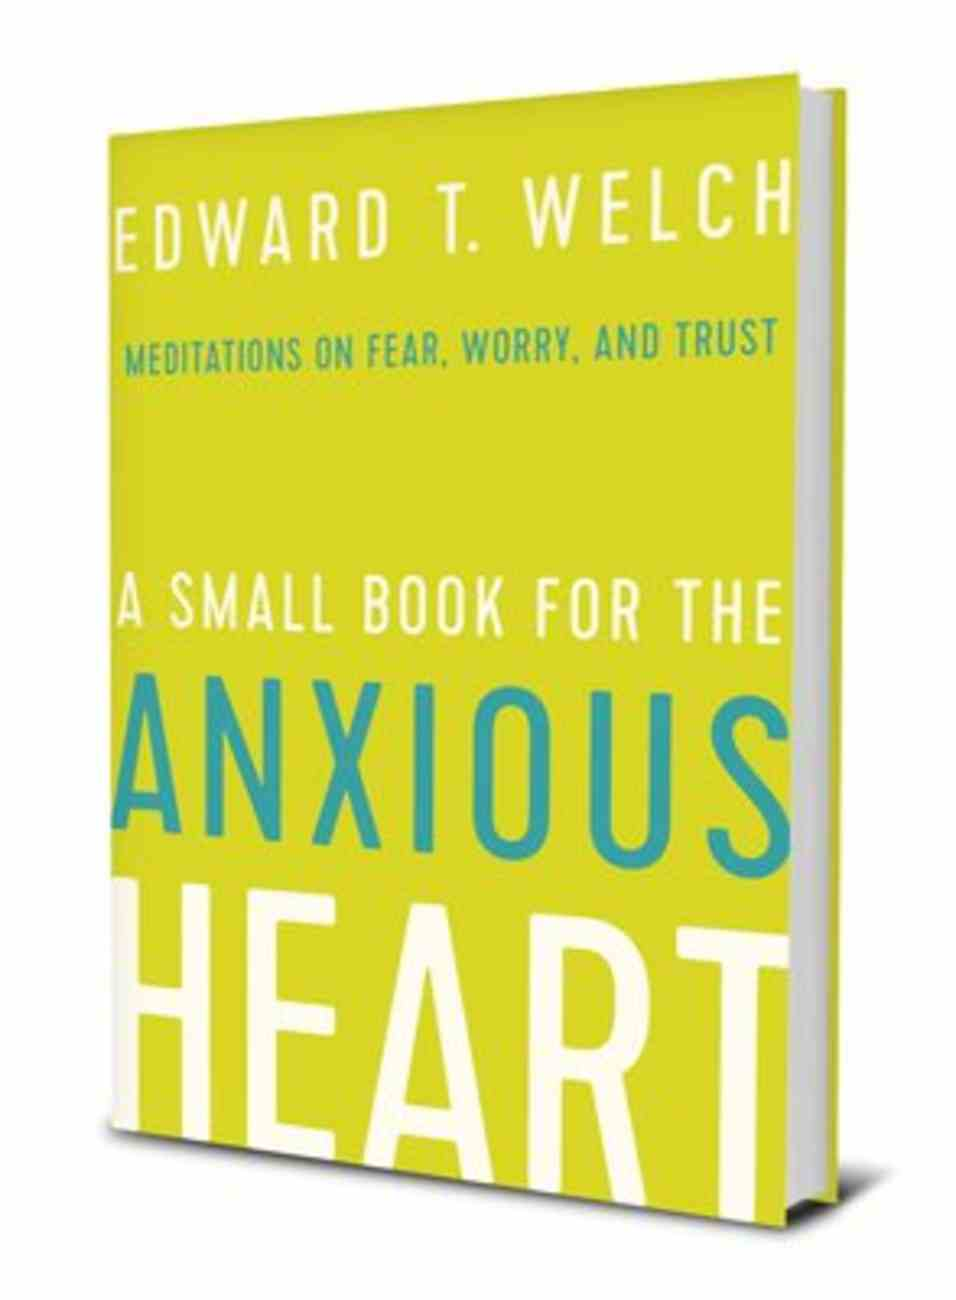 A Small Book For the Anxious Heart: Meditations on Fear, Worry, and Trust Hardback